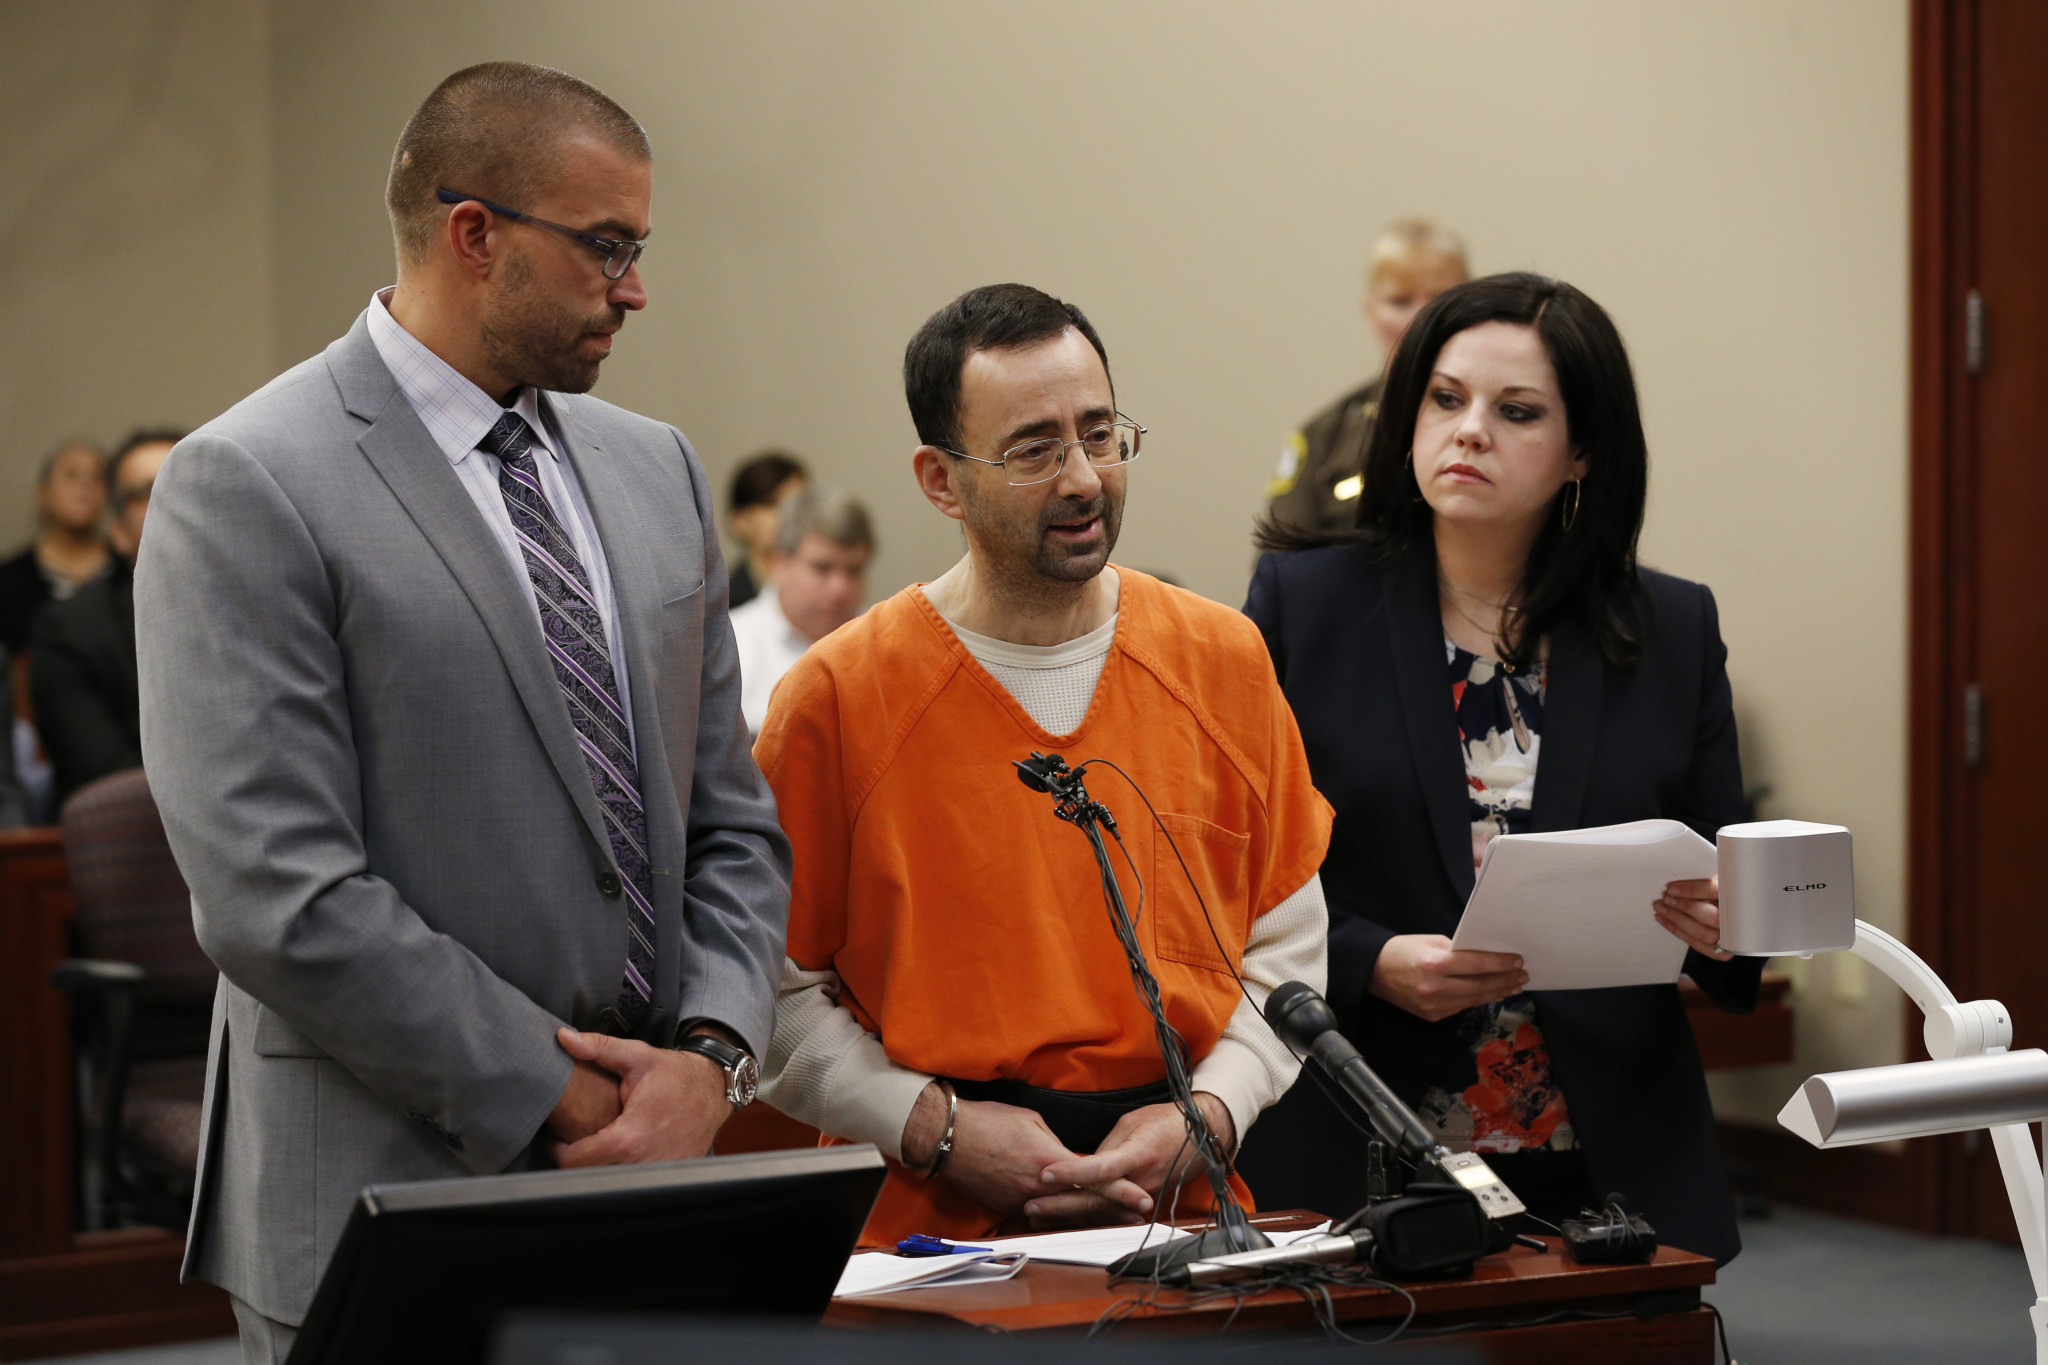 The scandal surrounding Larry Nassar has created growing pressure for change at USA Gymnastics ©USA Gymnastics